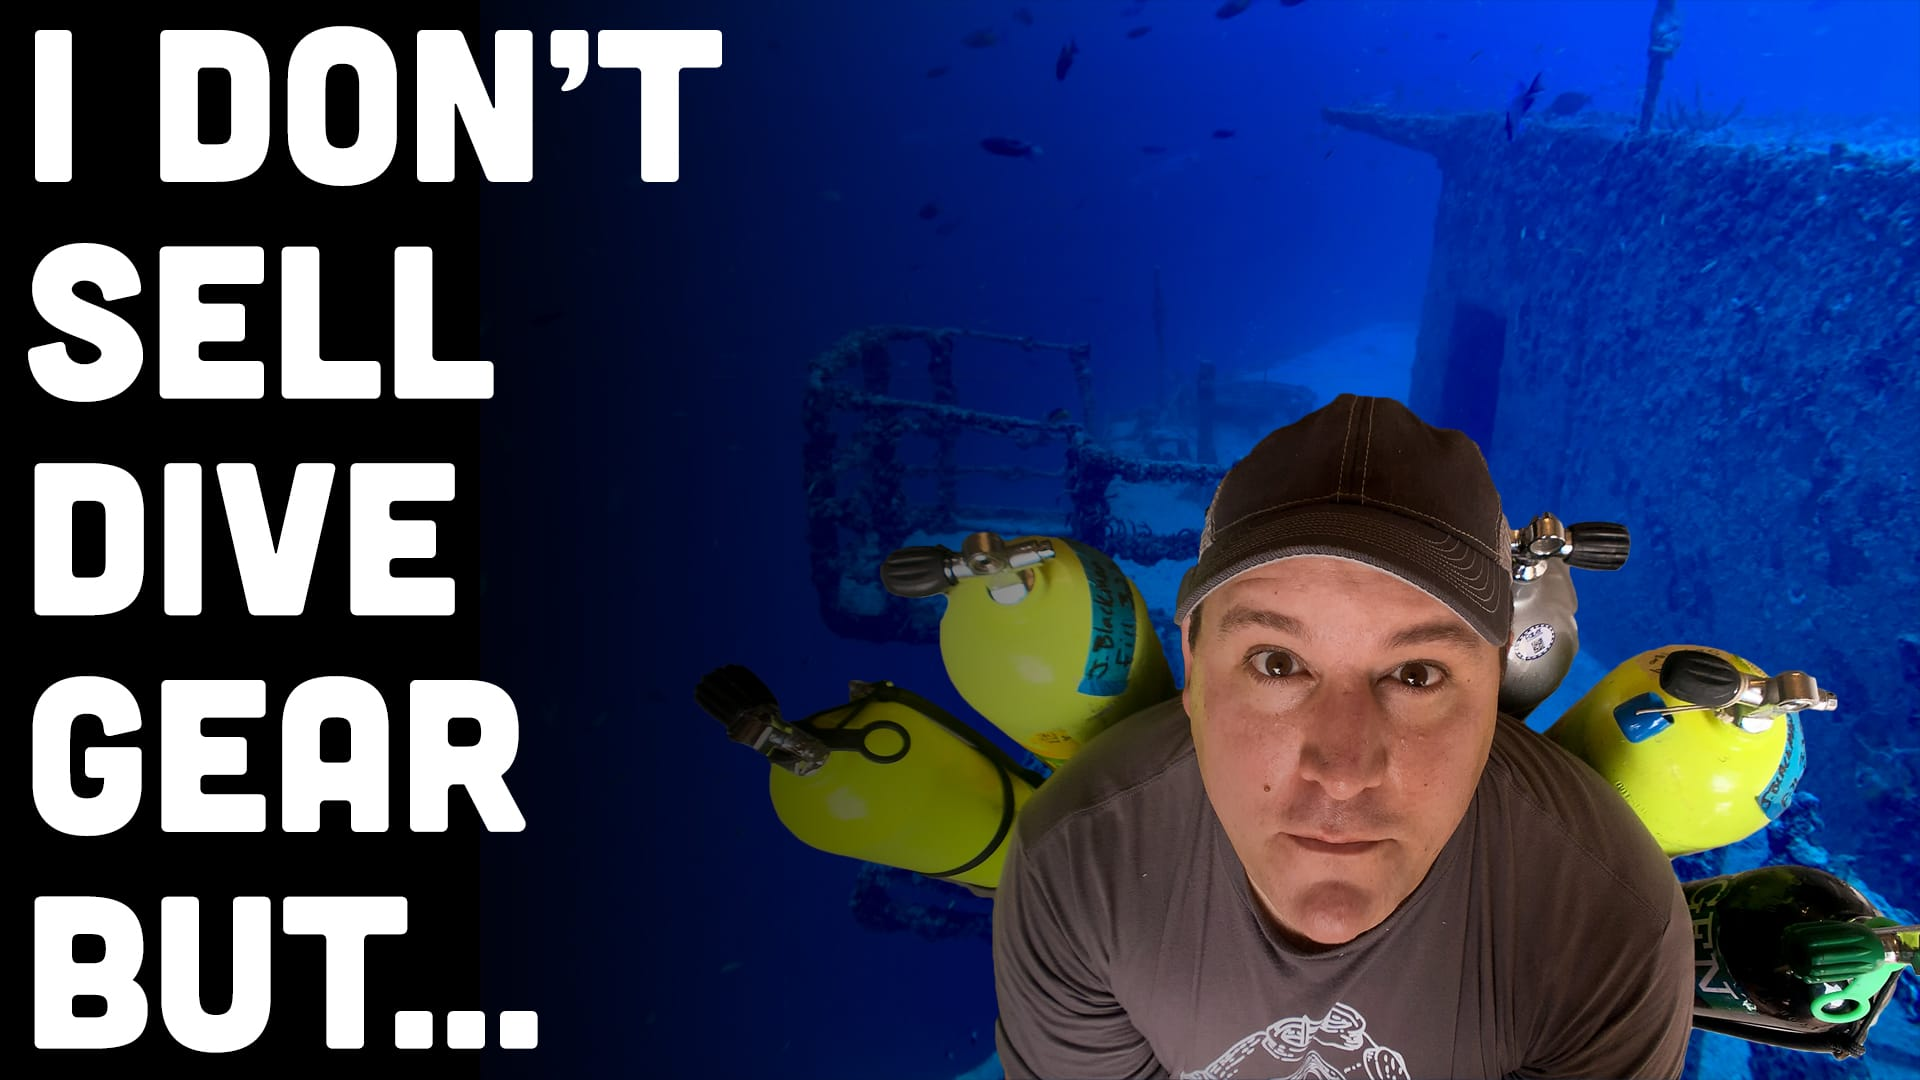 5 F-inf Good reasons Why You Should Buy Your Own Dive Gear